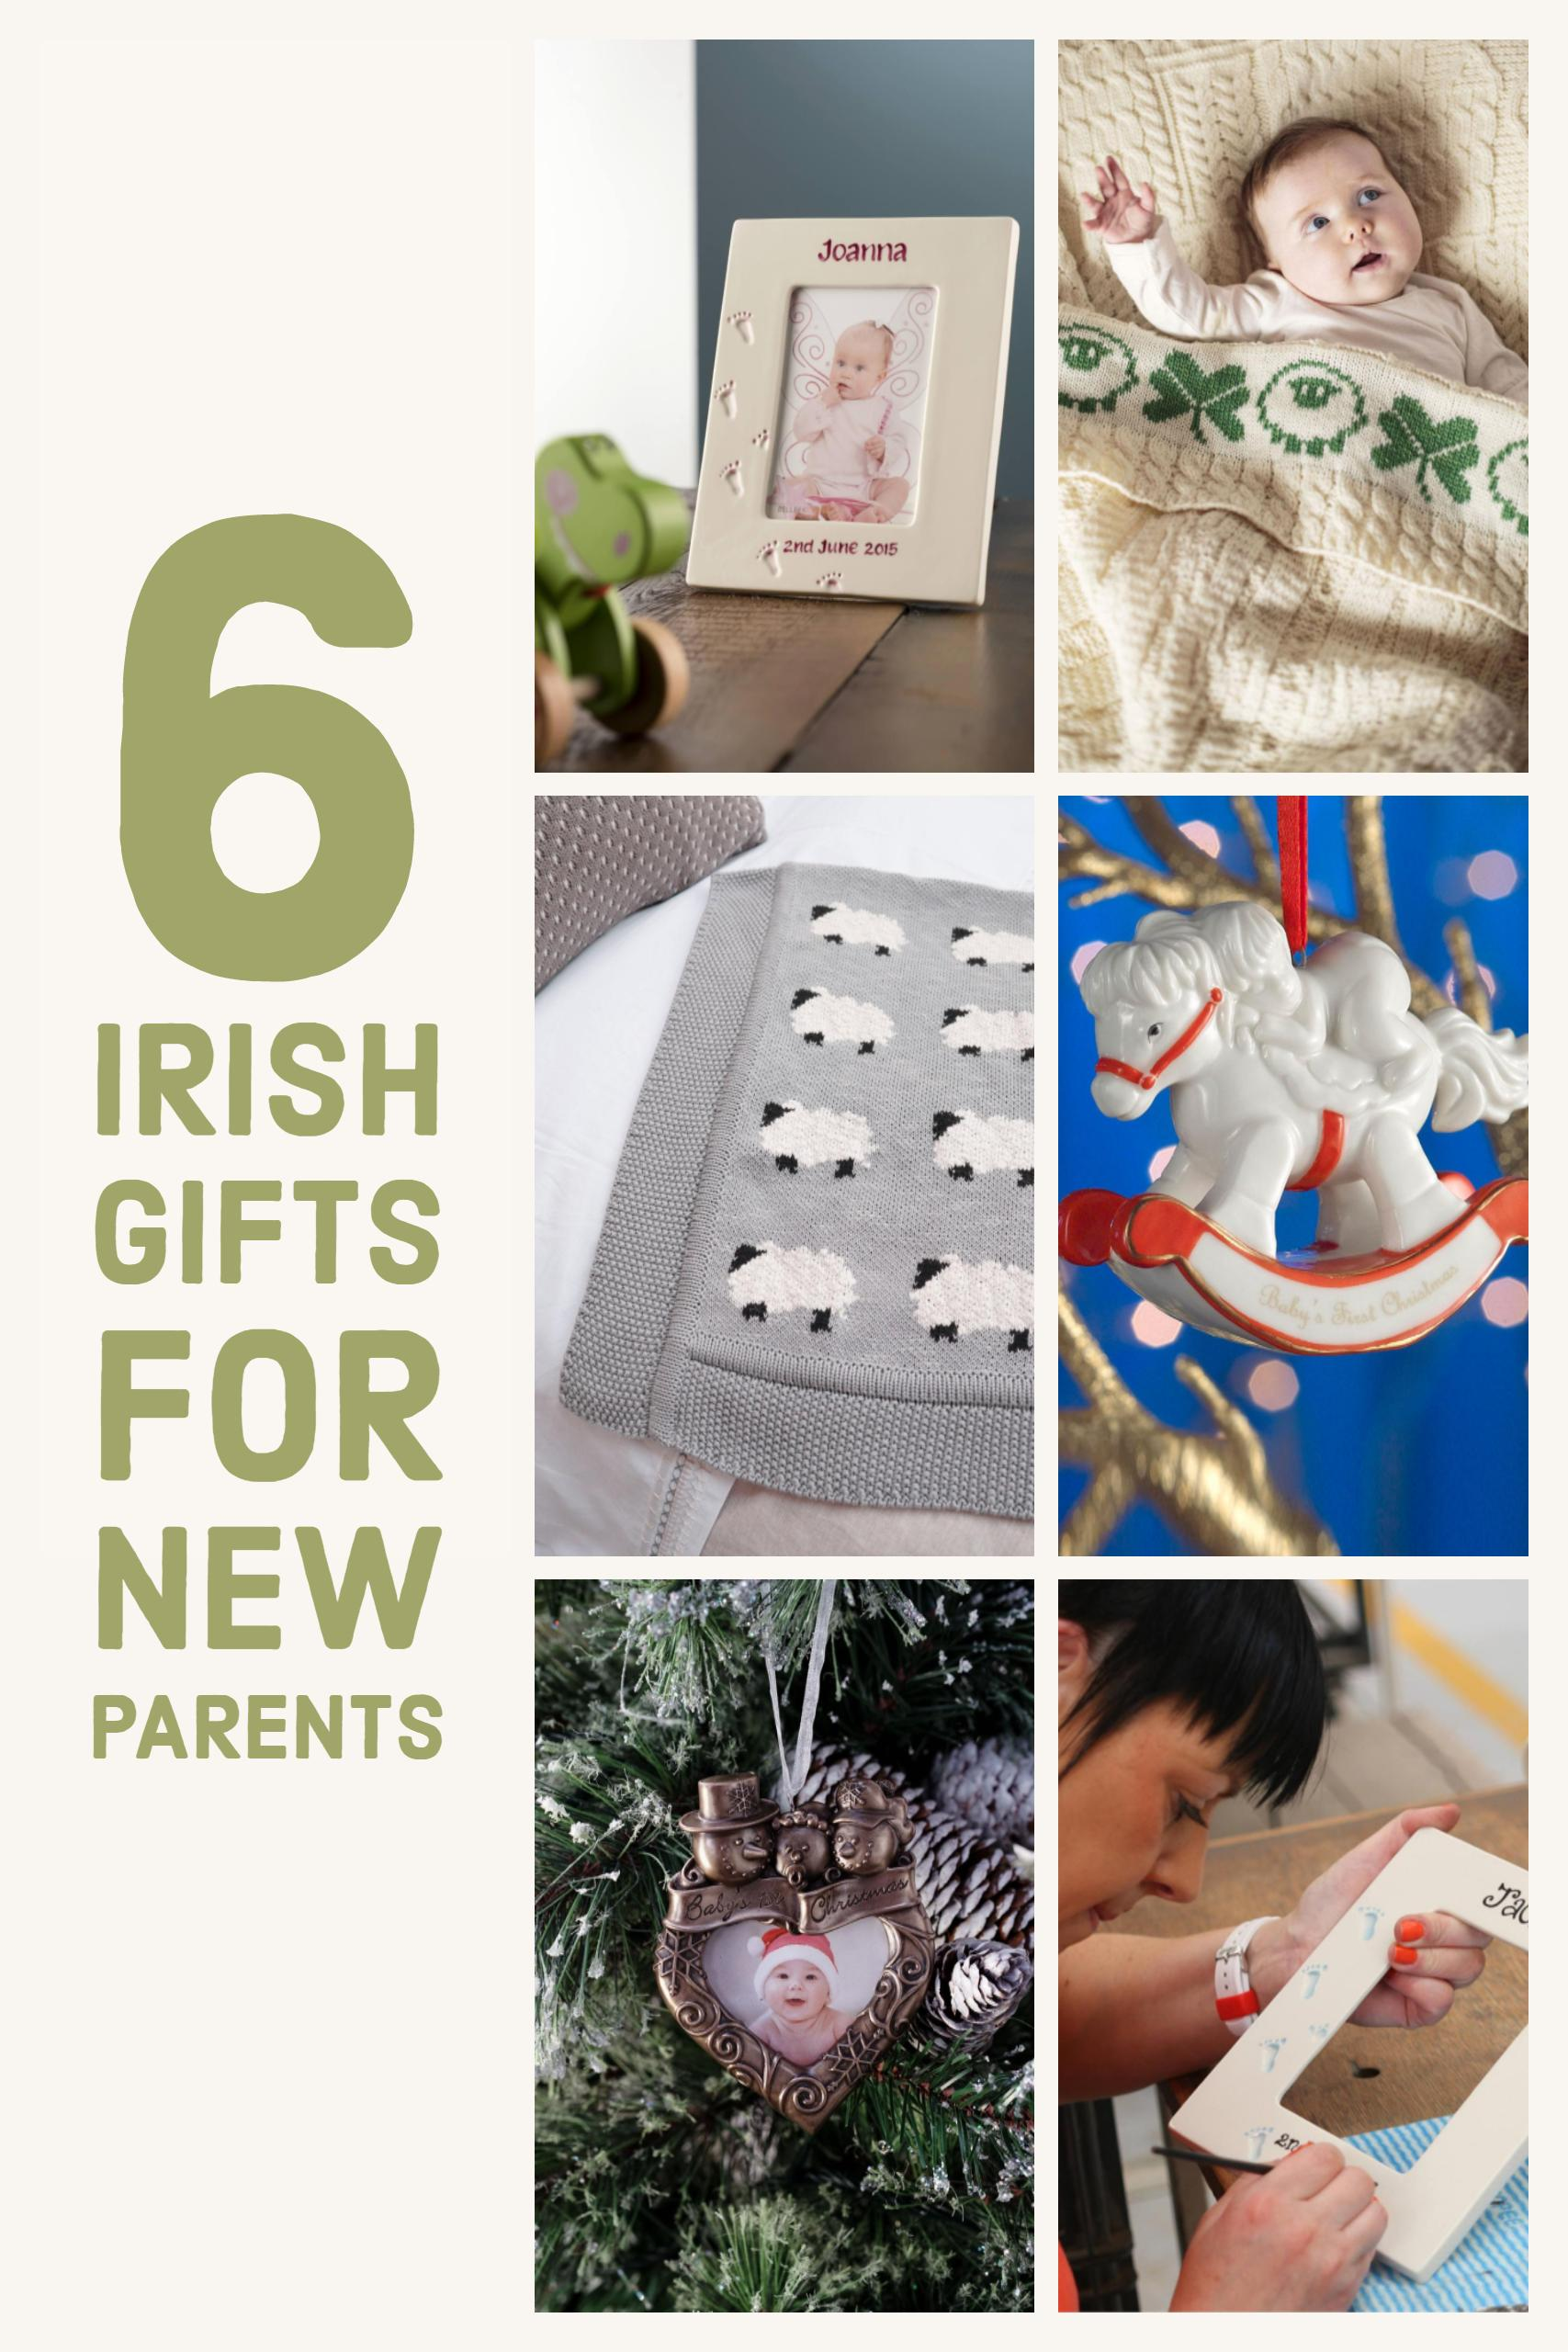 Five Traditional Irish Wedding Gift Ideas | Explore ...